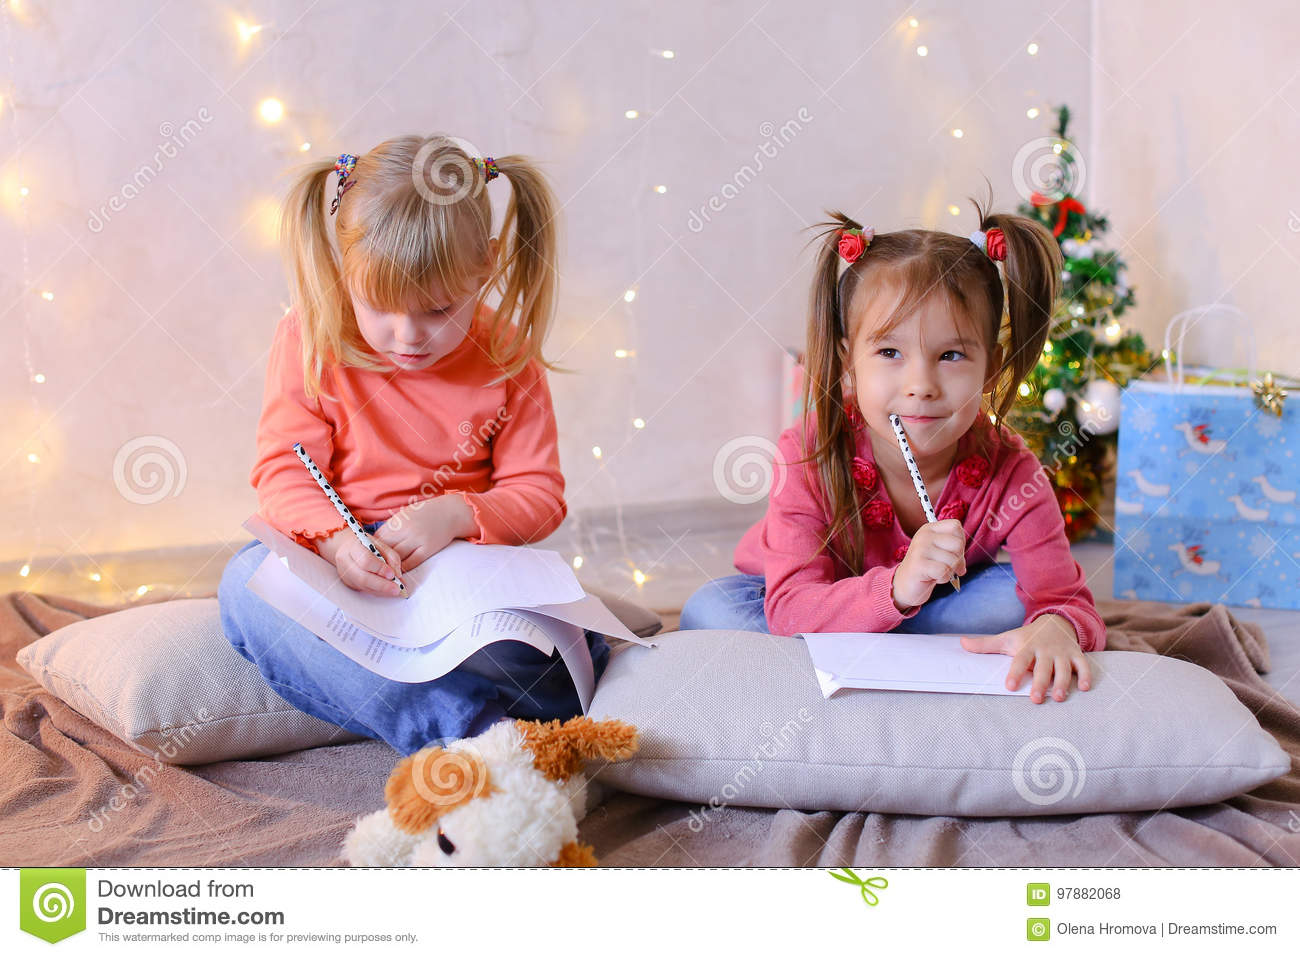 two lovely children of girls with smiles on their faces and in good spirits dream of new year gifts and write wishes for santa claus with pen on paper and